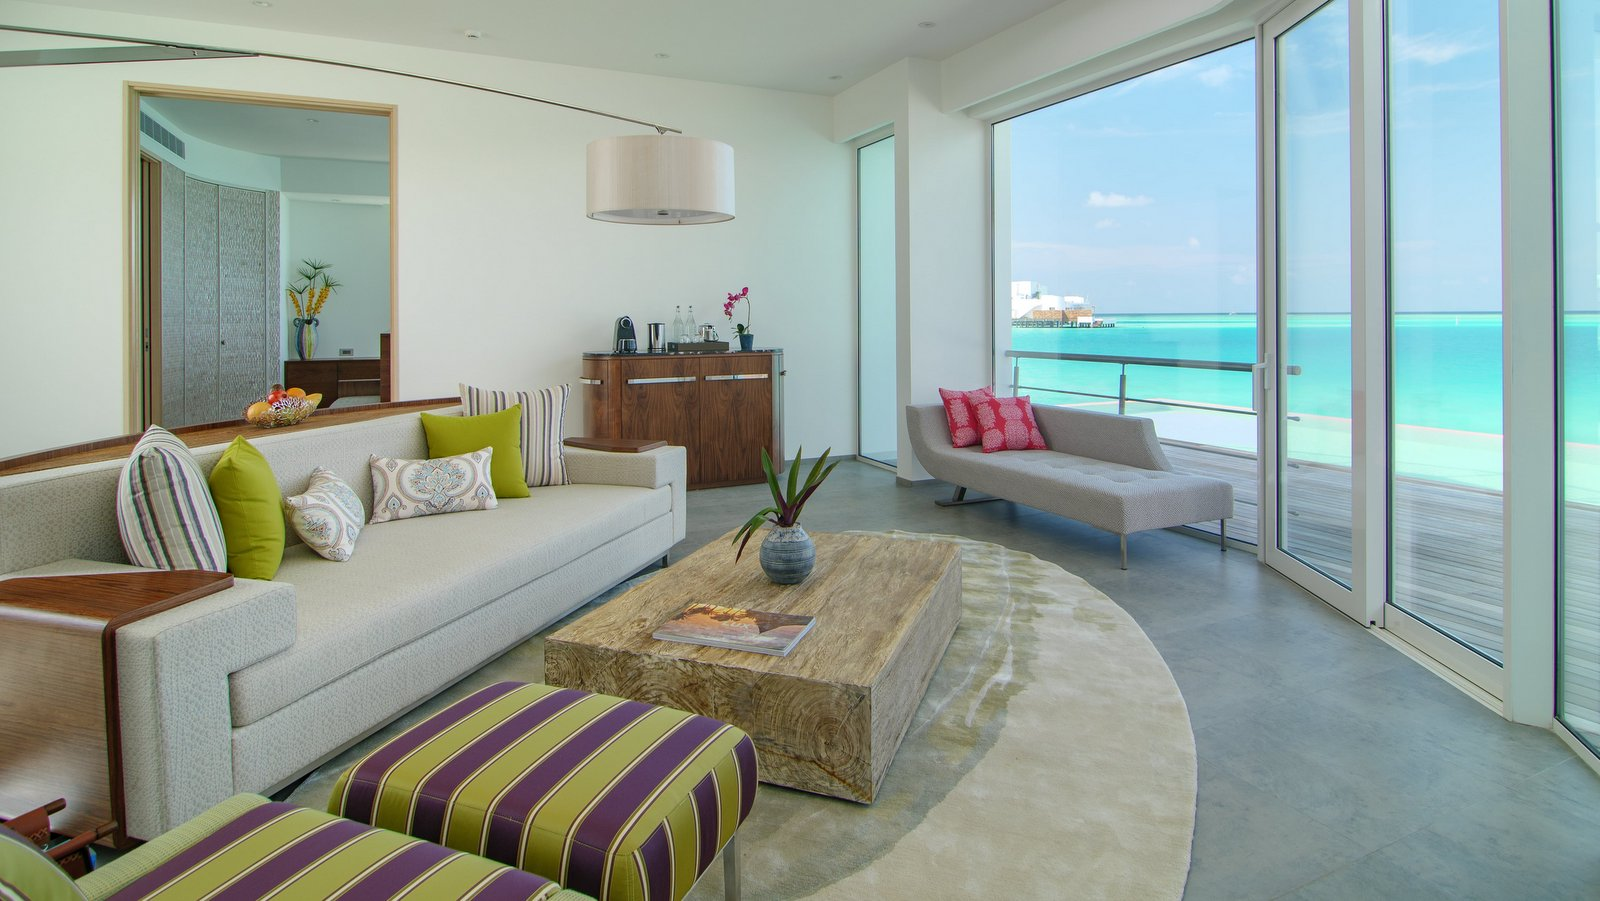 Мальдивы, отель LUX North Male Atoll, номер Deluxe Water Villa with Pool